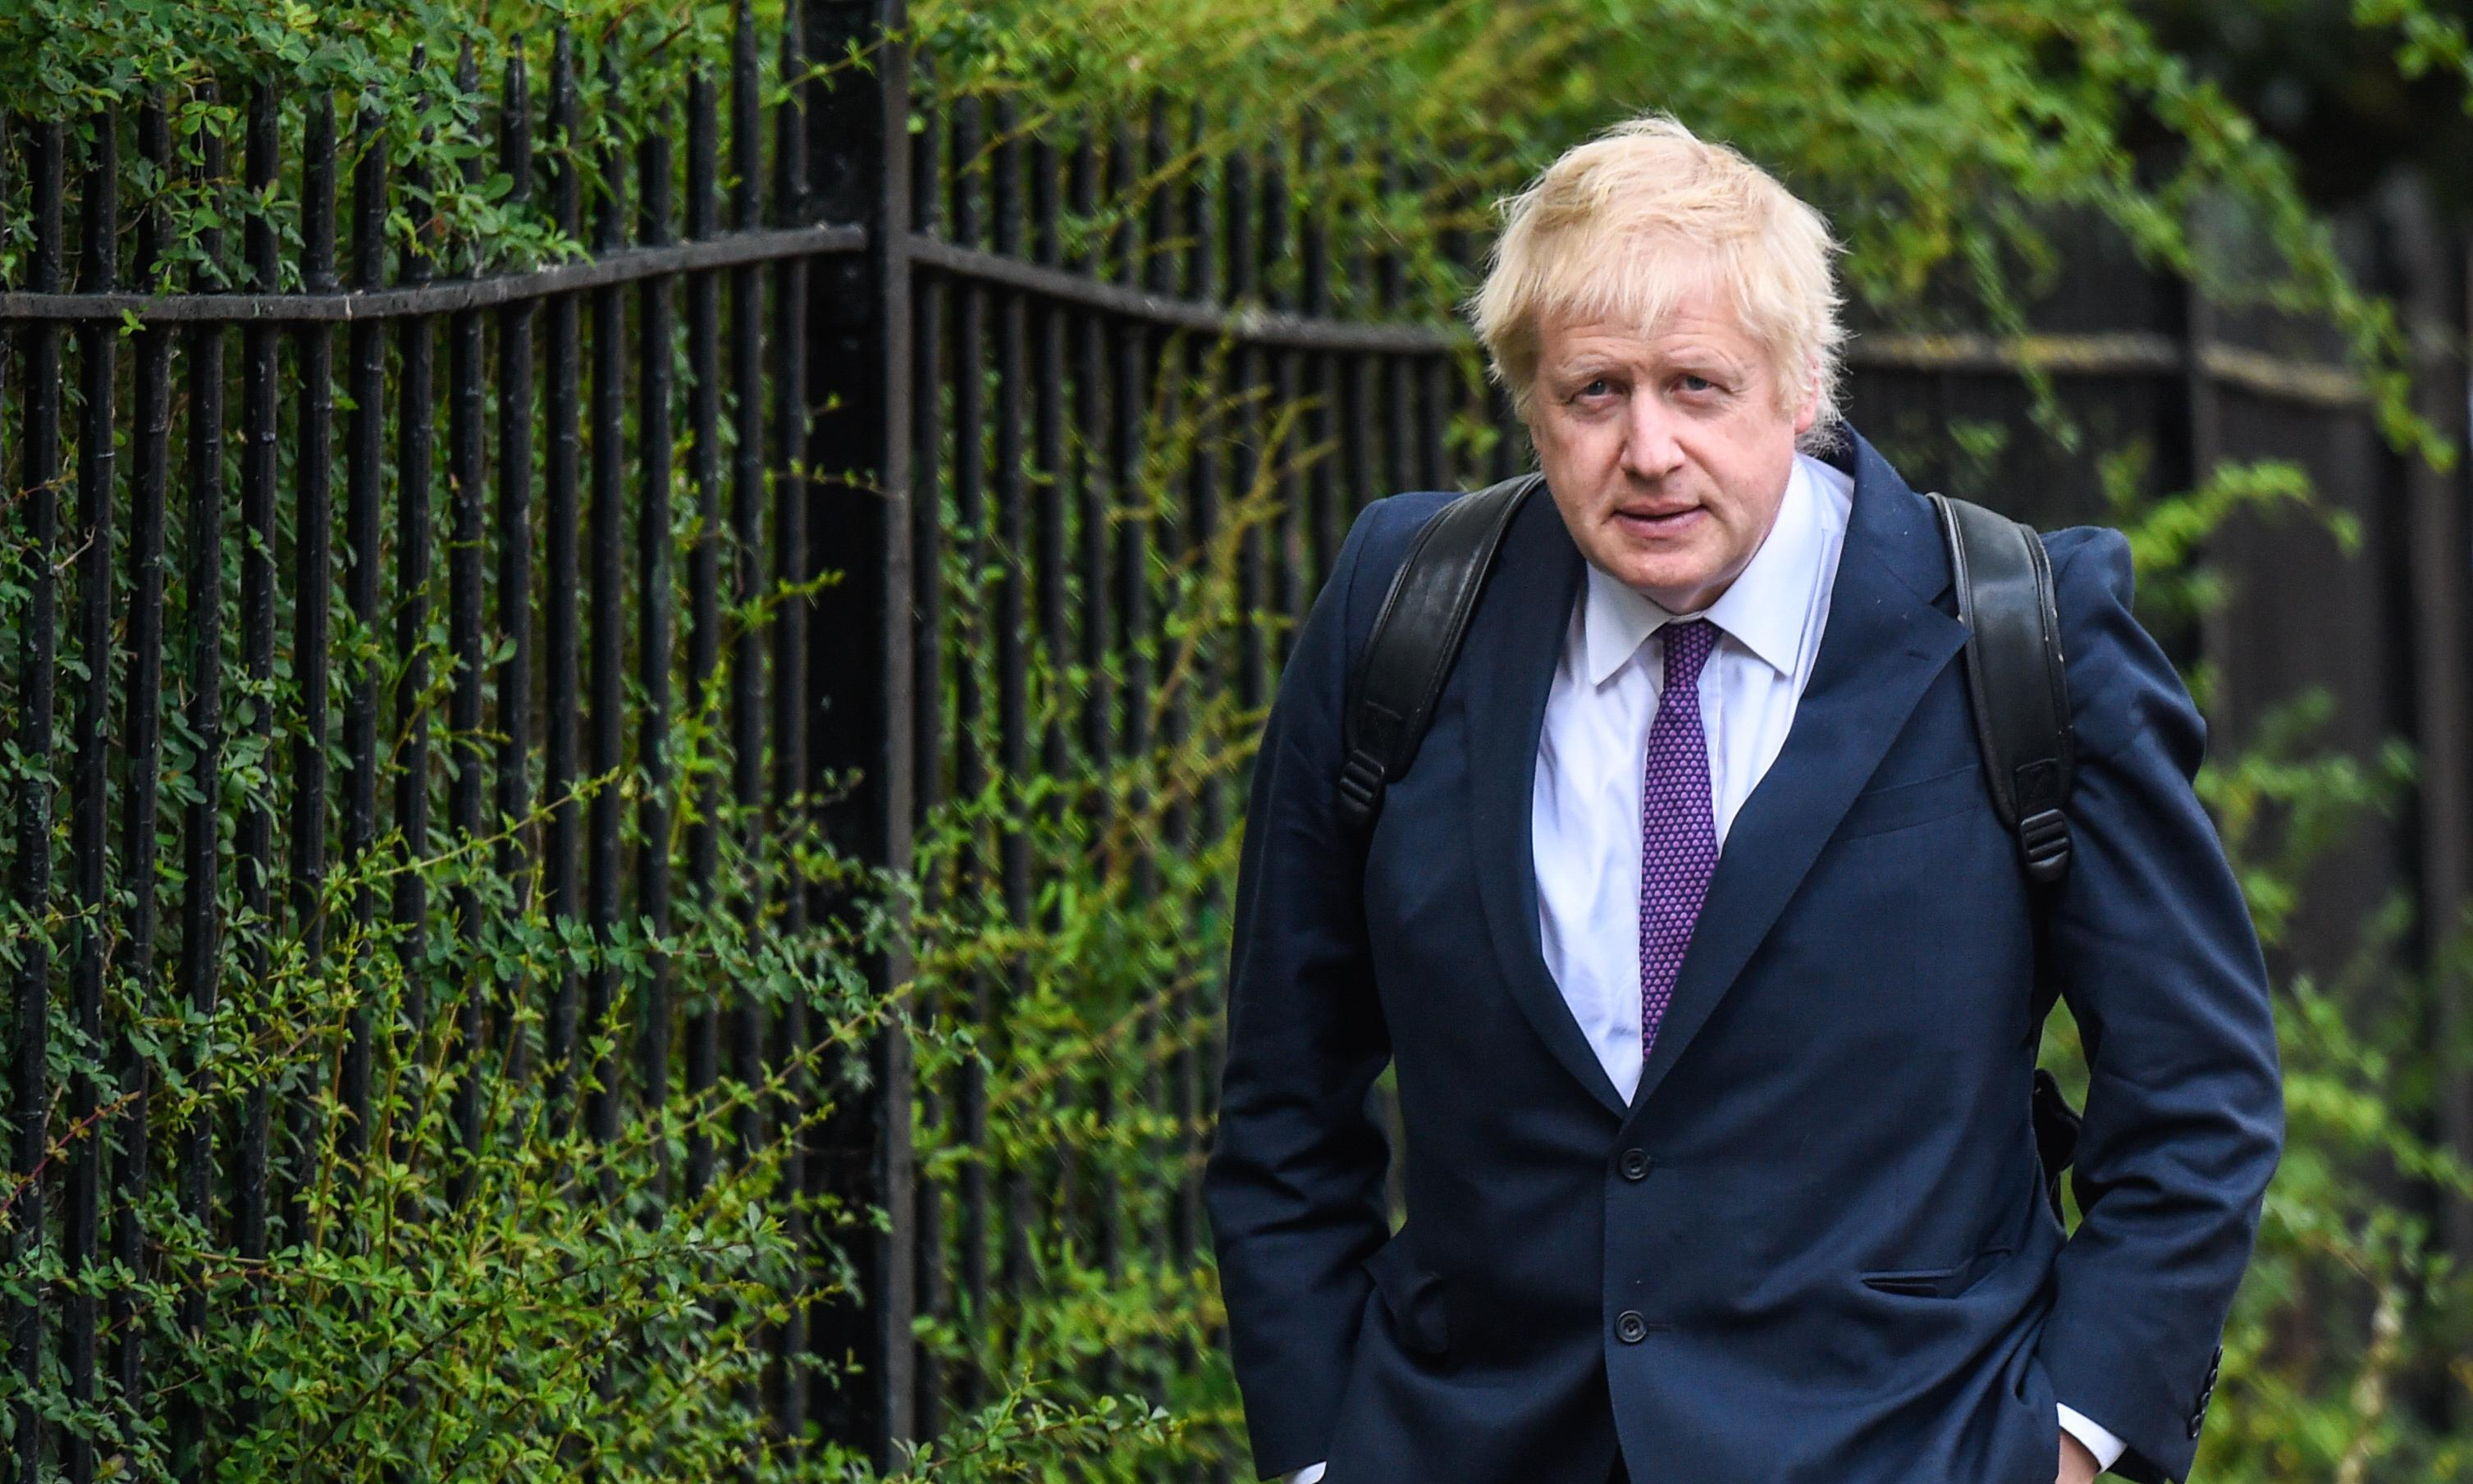 What does Europe think of Boris Johnson being next prime minister – with all his baggage?